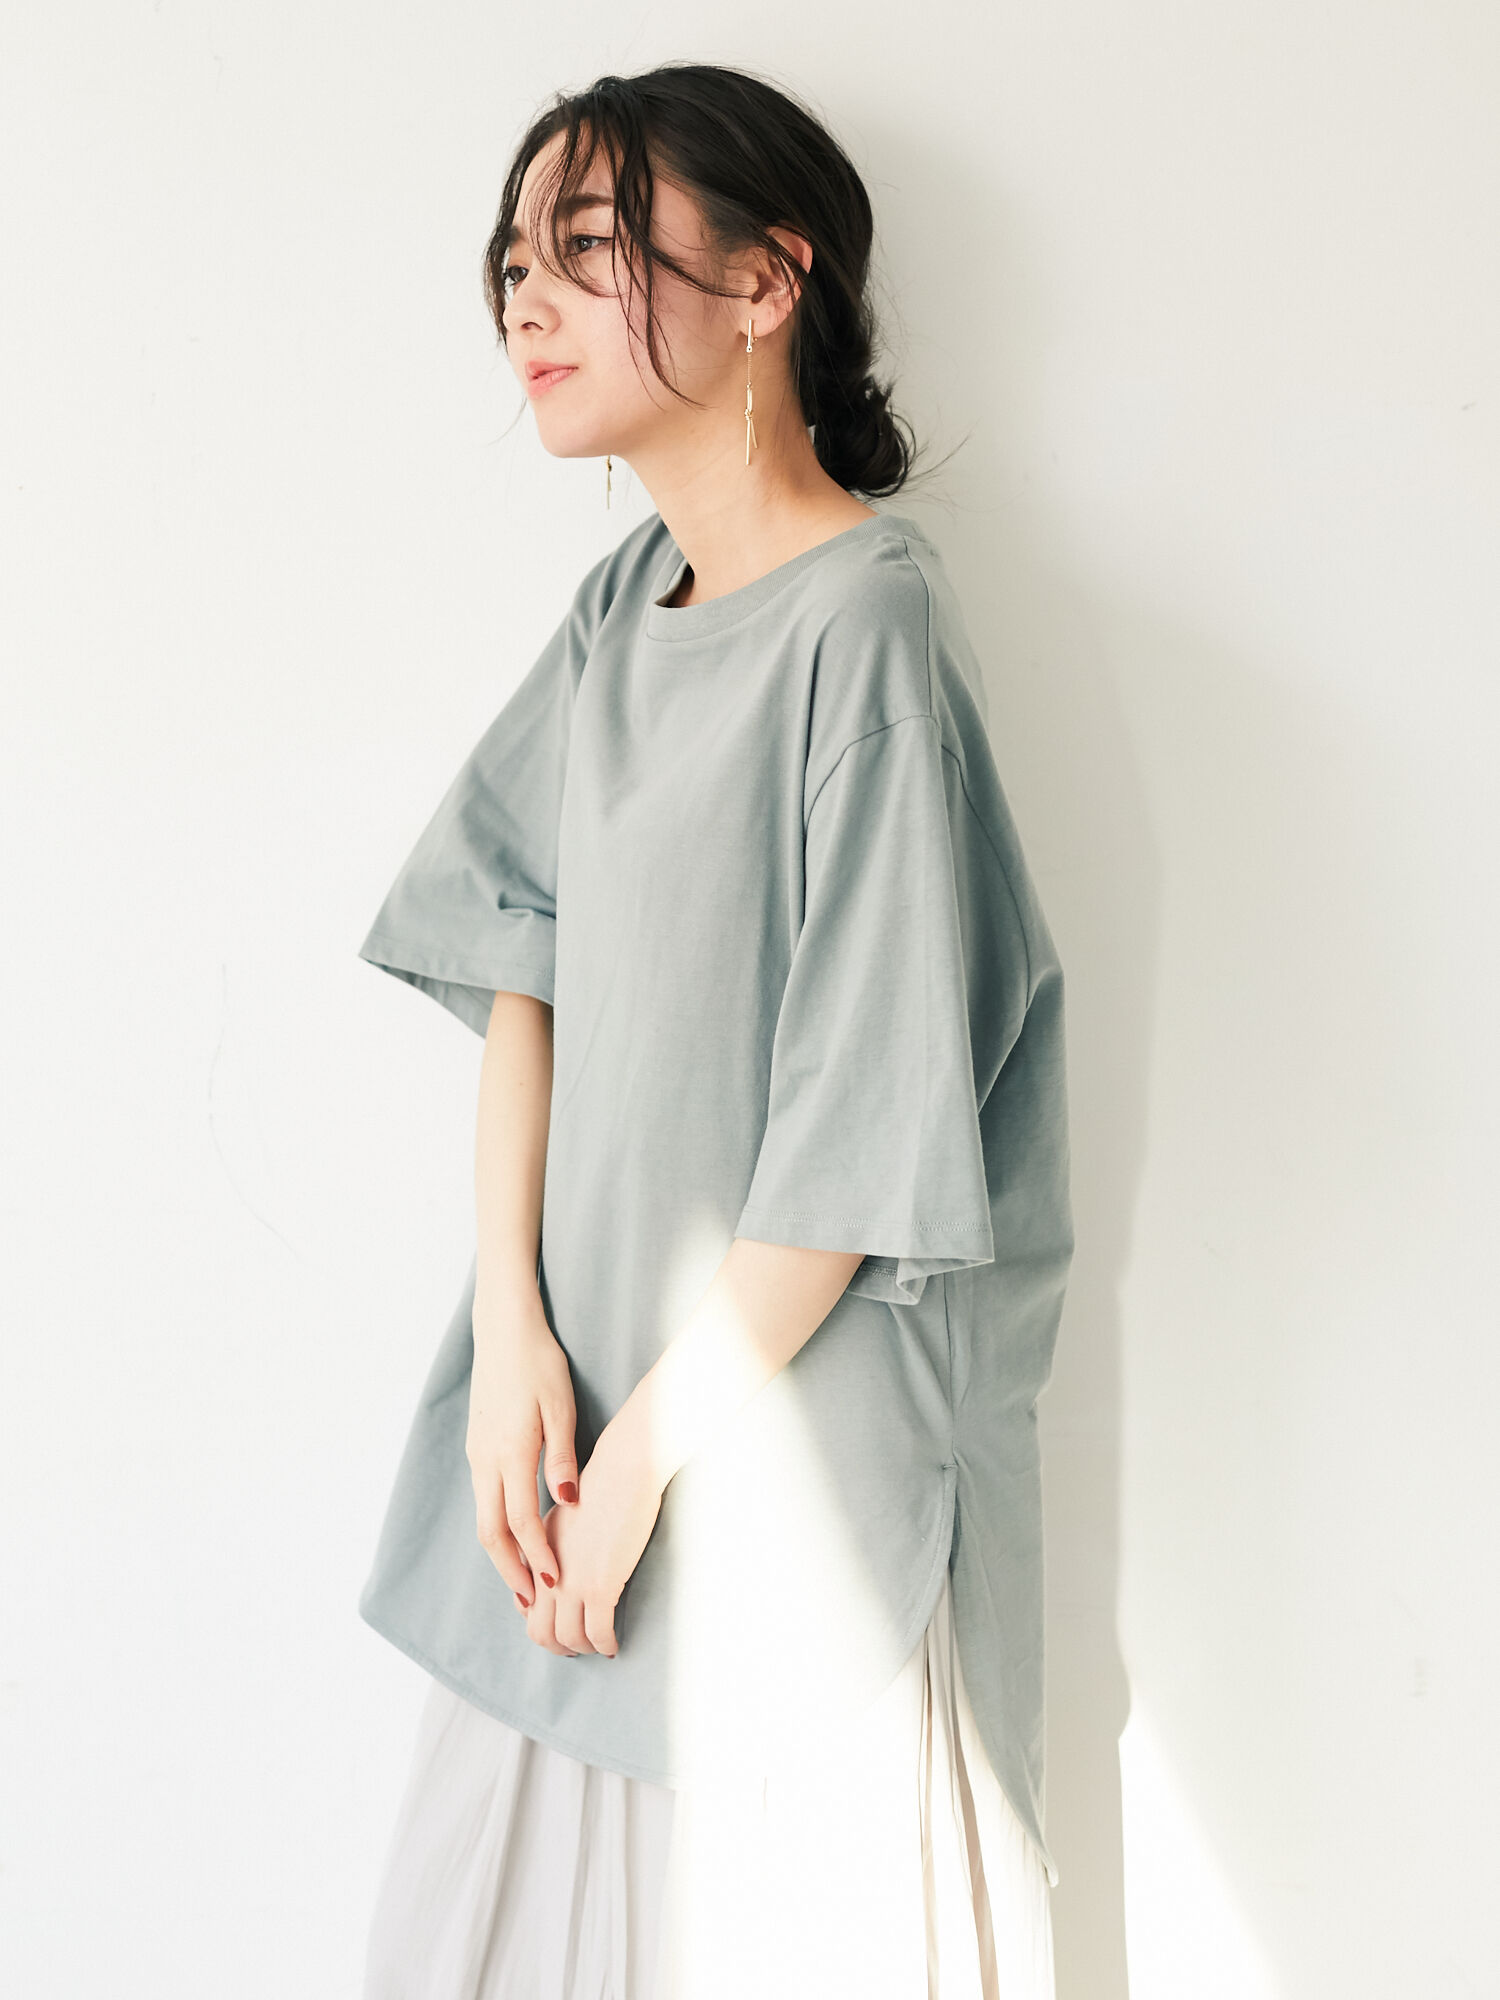 Green Parks Madison Top - Mint